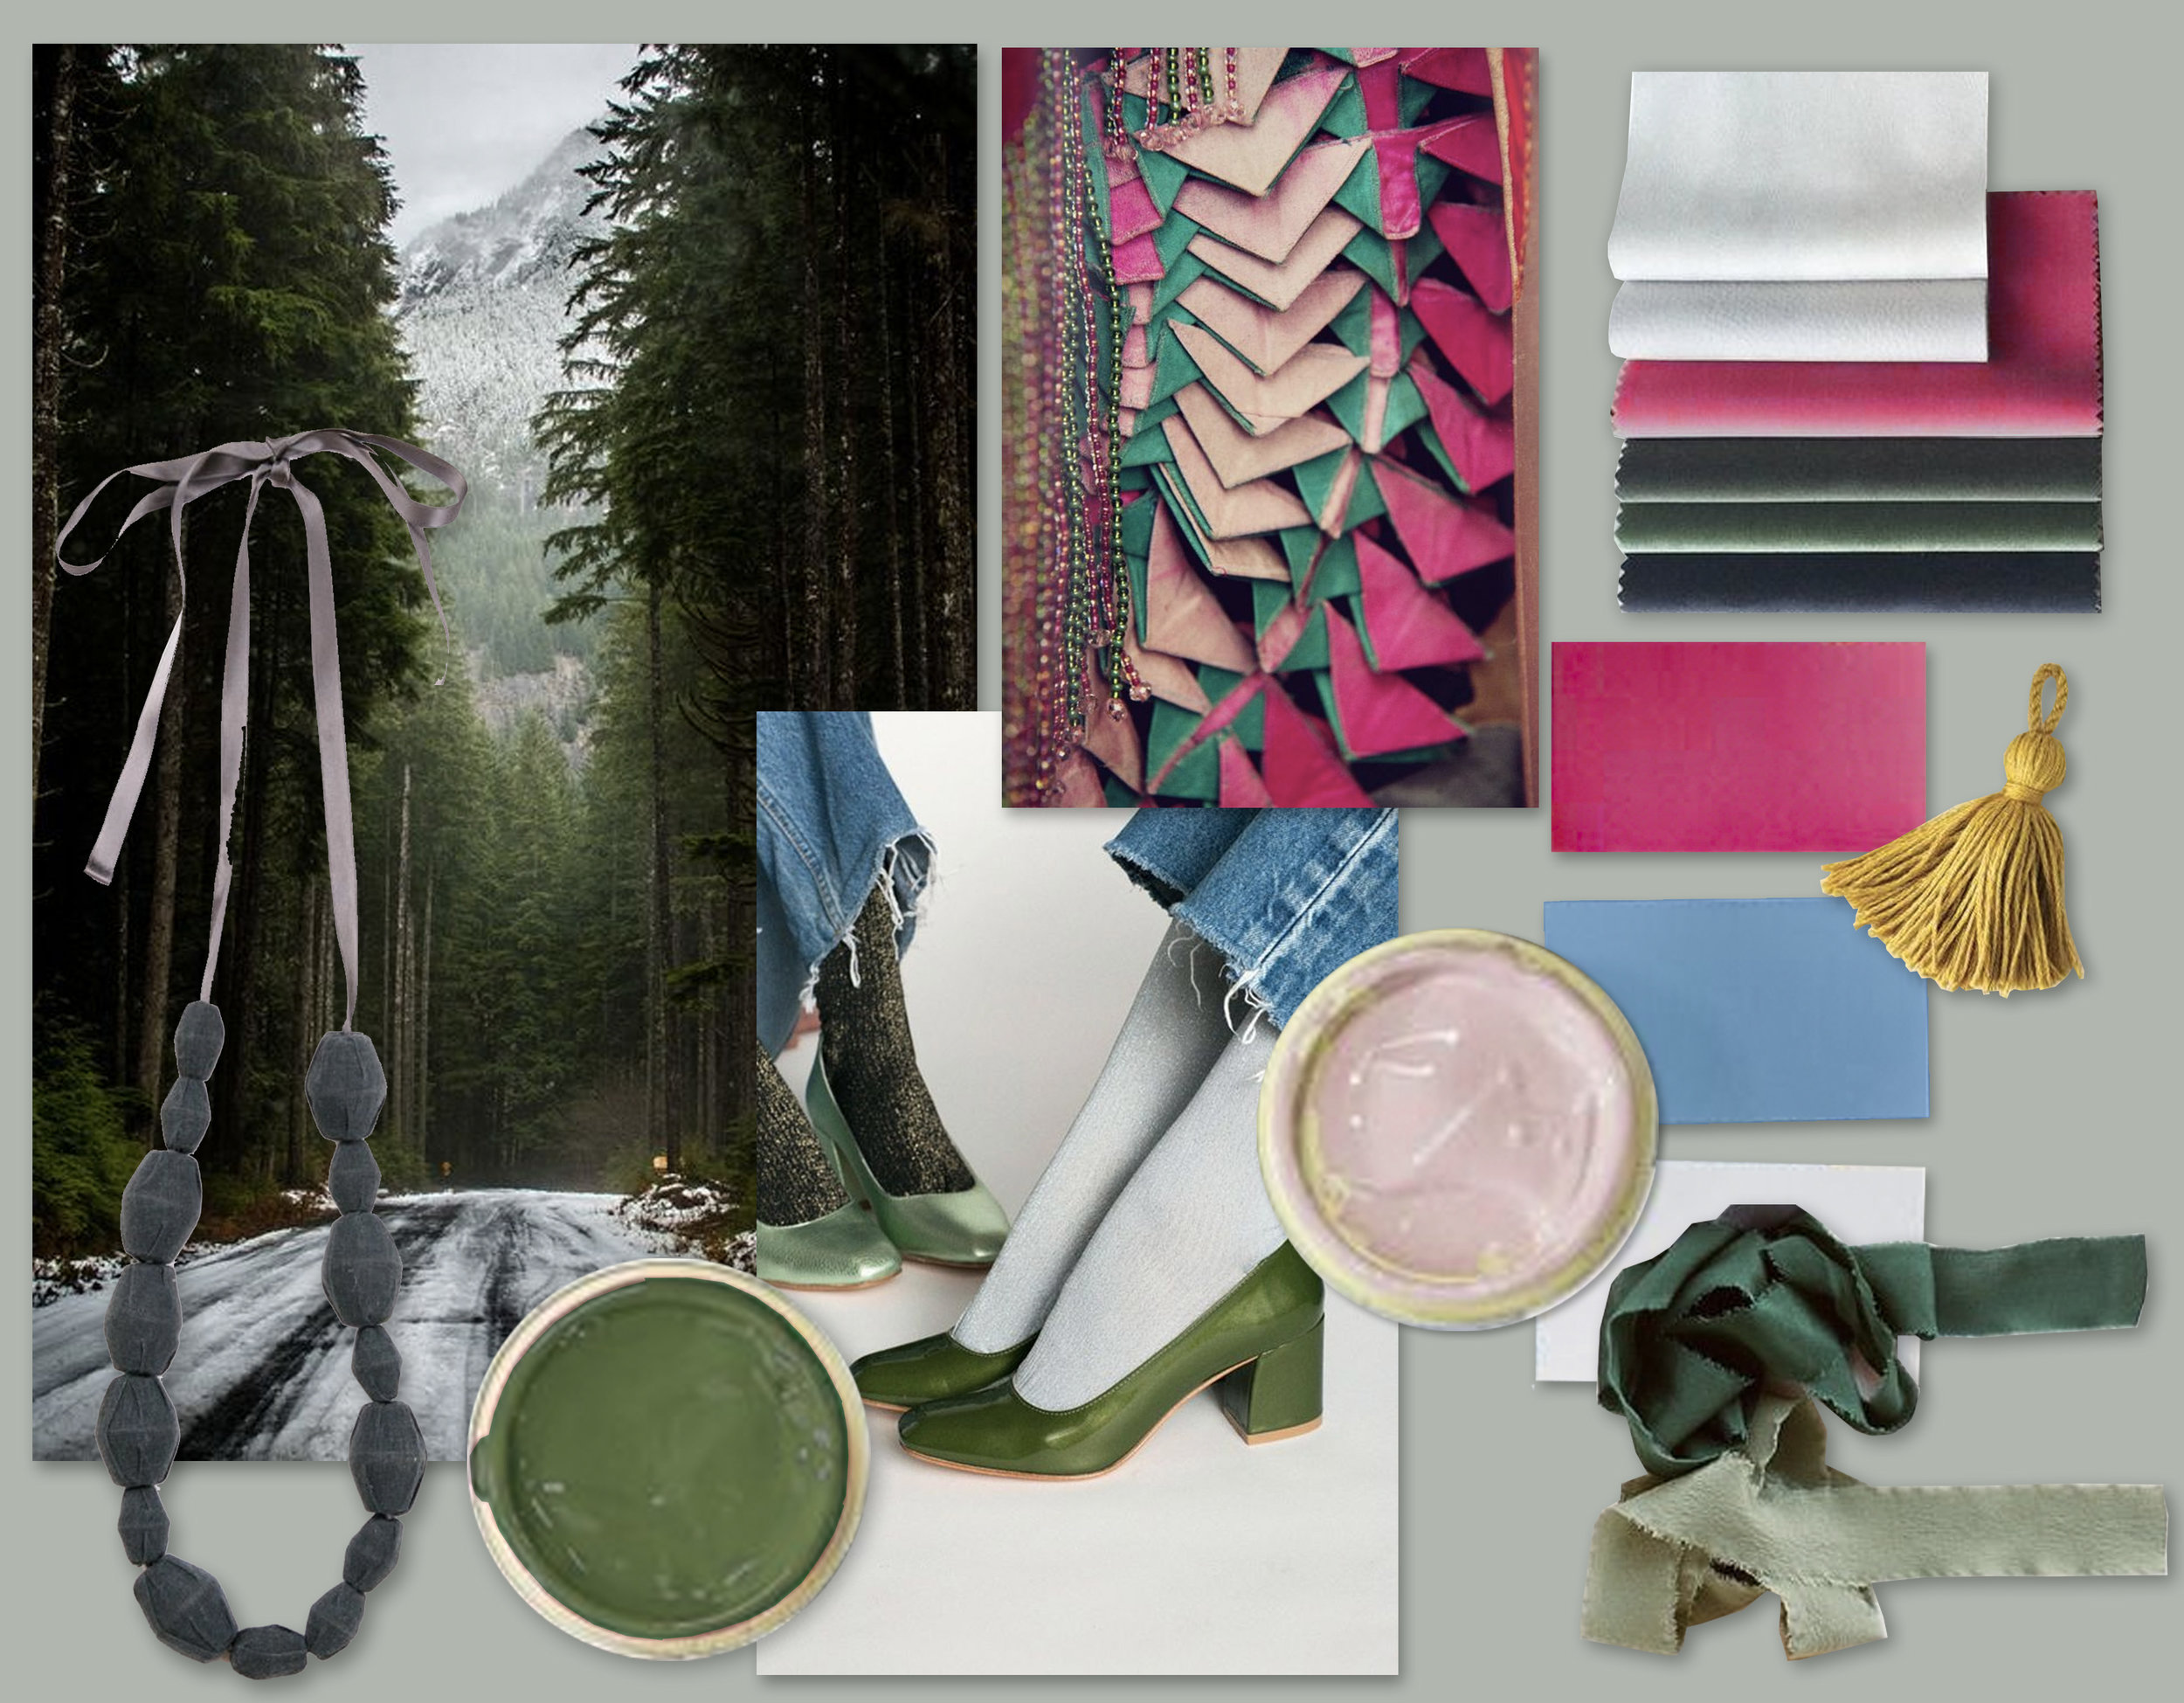 Mood board to decide color harmony - images collected on Pinterest